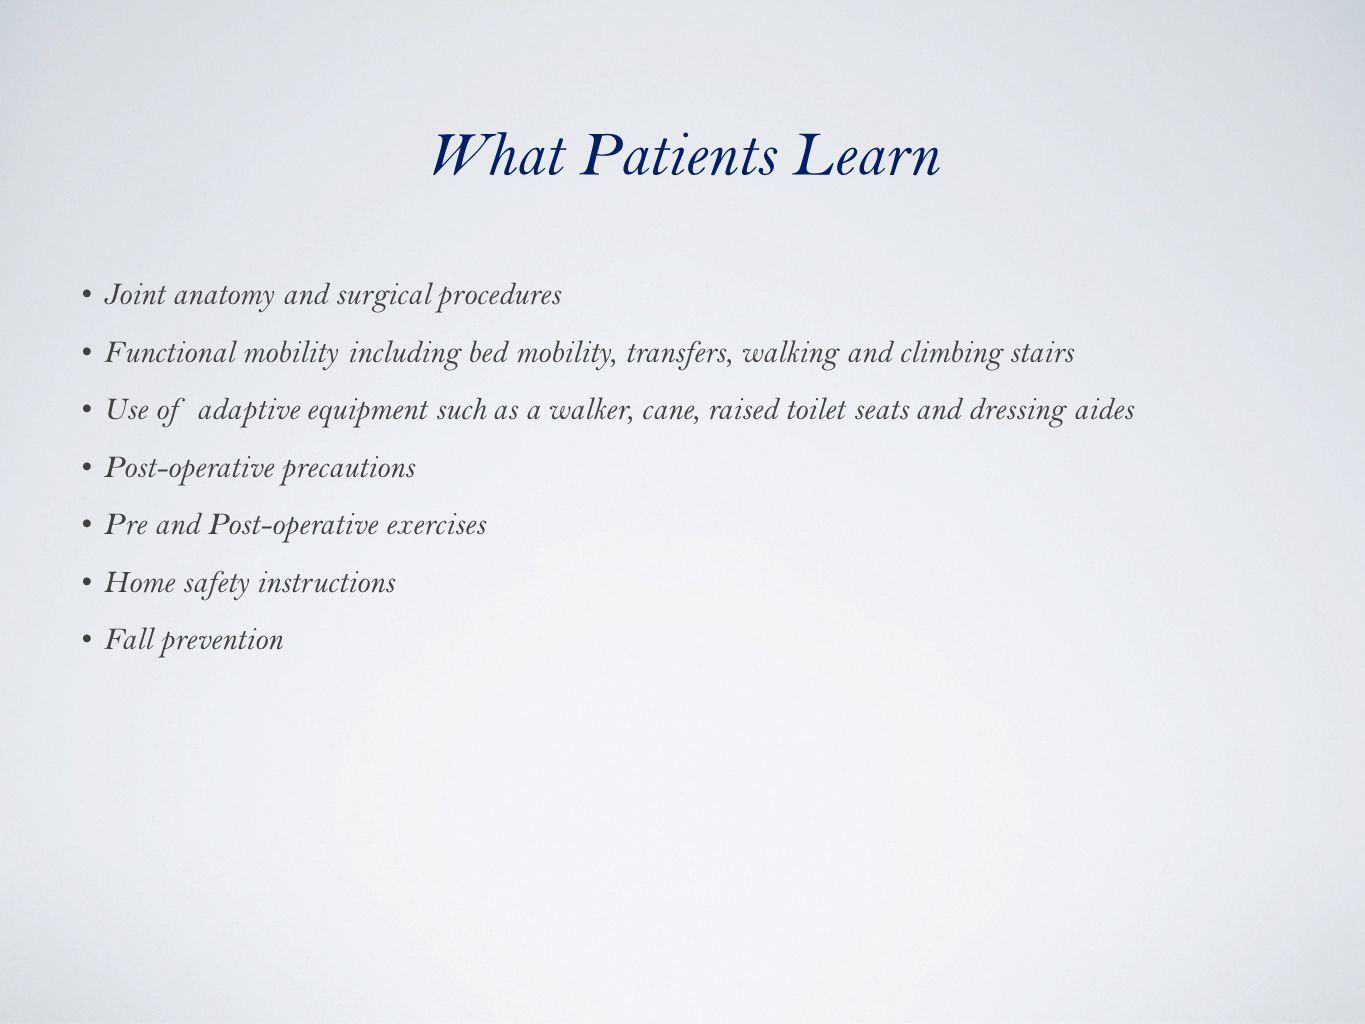 What Patients Learn Joint anatomy and surgical procedures Functional mobility including bed mobility, transfers, walking and climbing stairs Use of adaptive equipment such as a walker, cane, raised toilet seats and dressing aides Post-operative precautions Pre and Post-operative exercises Home safety instructions Fall prevention